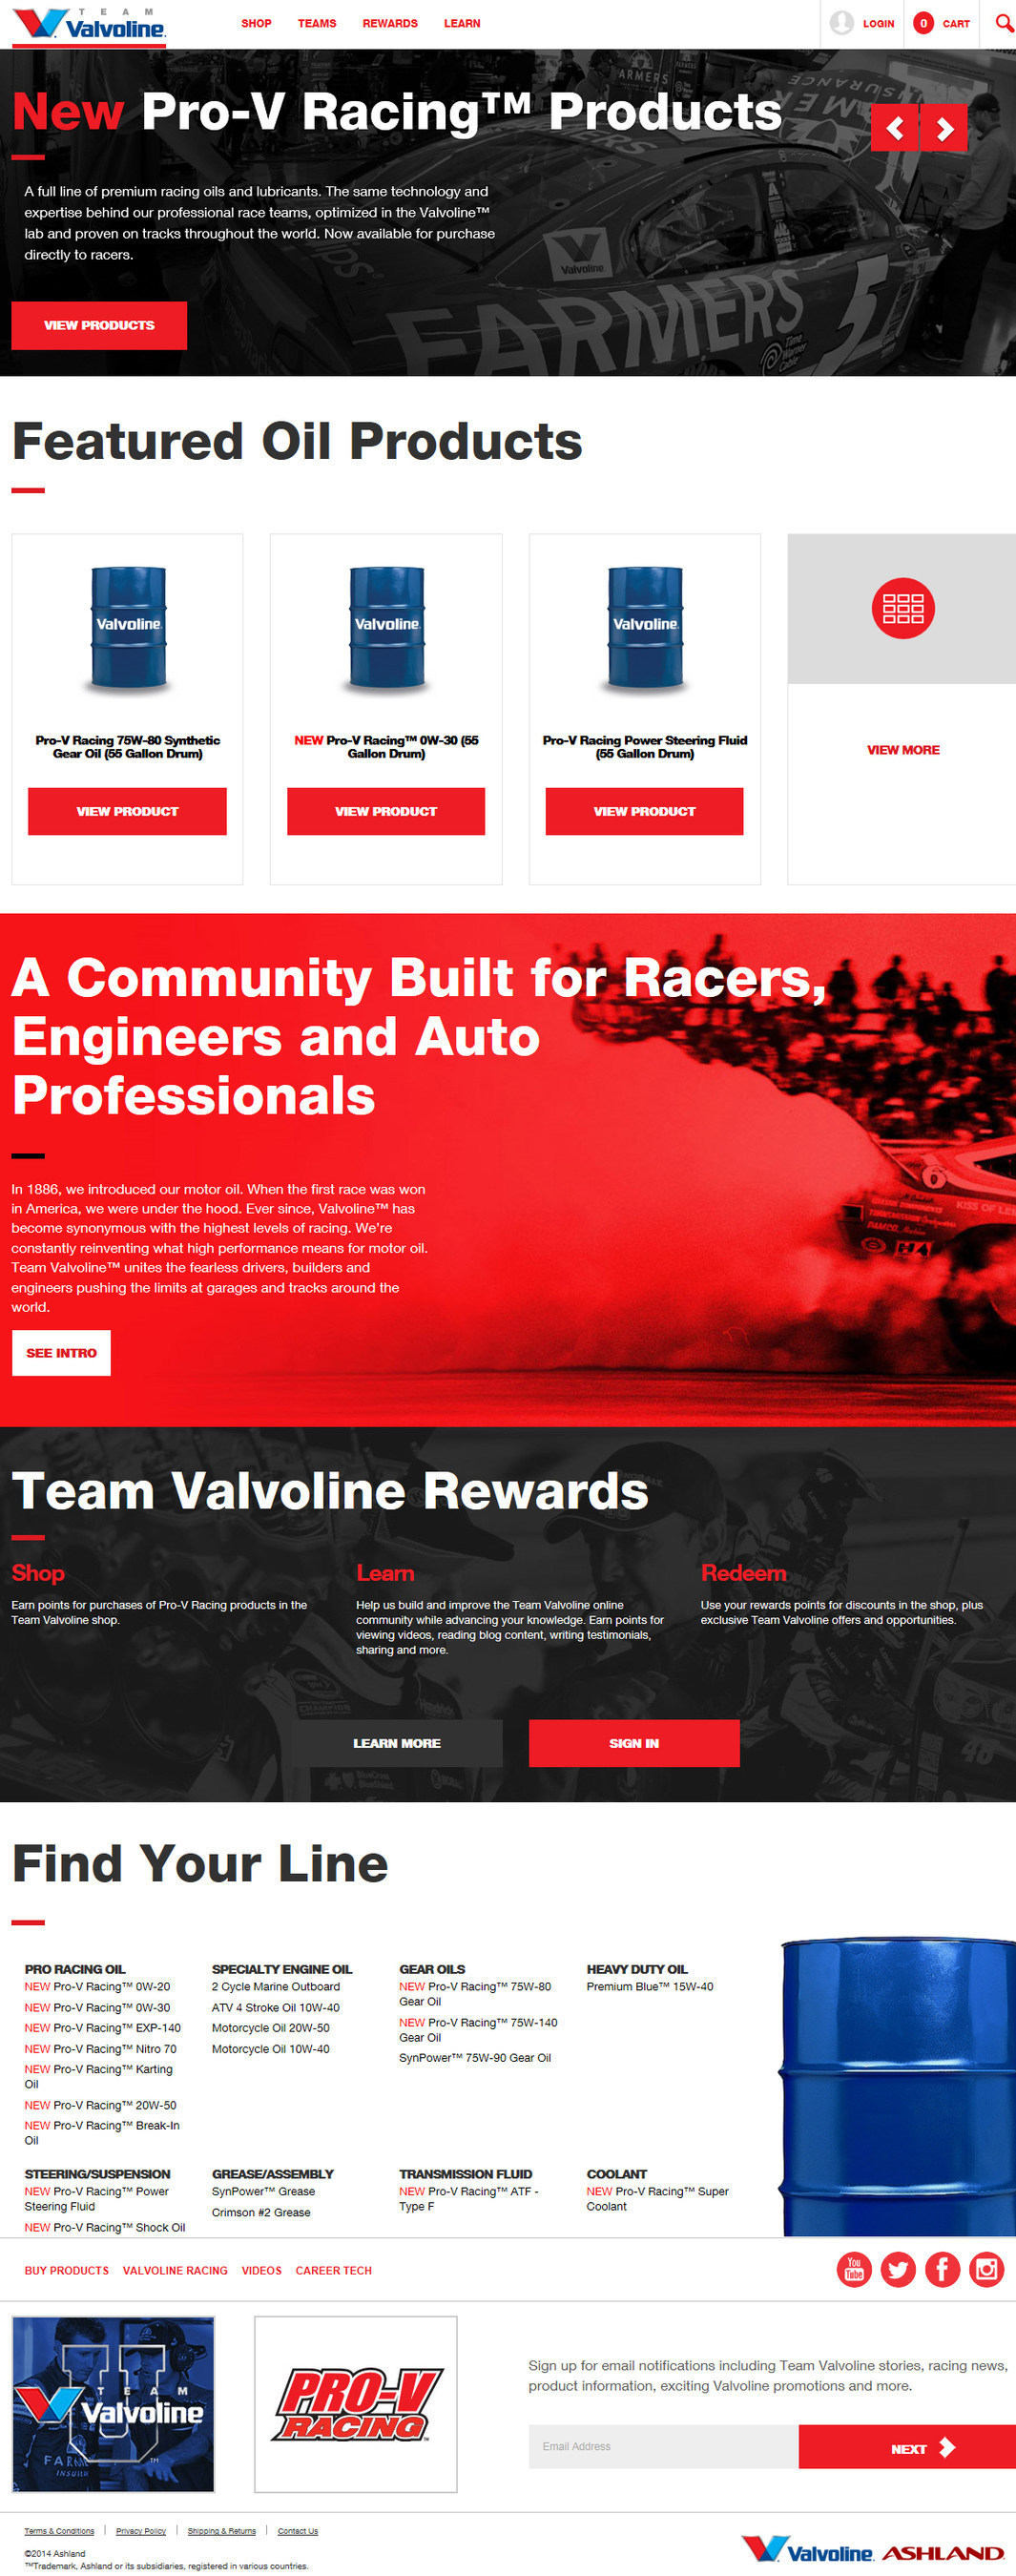 Valvoline Announces New TeamValvoline.com Online Hub for Racers and Enthusiasts